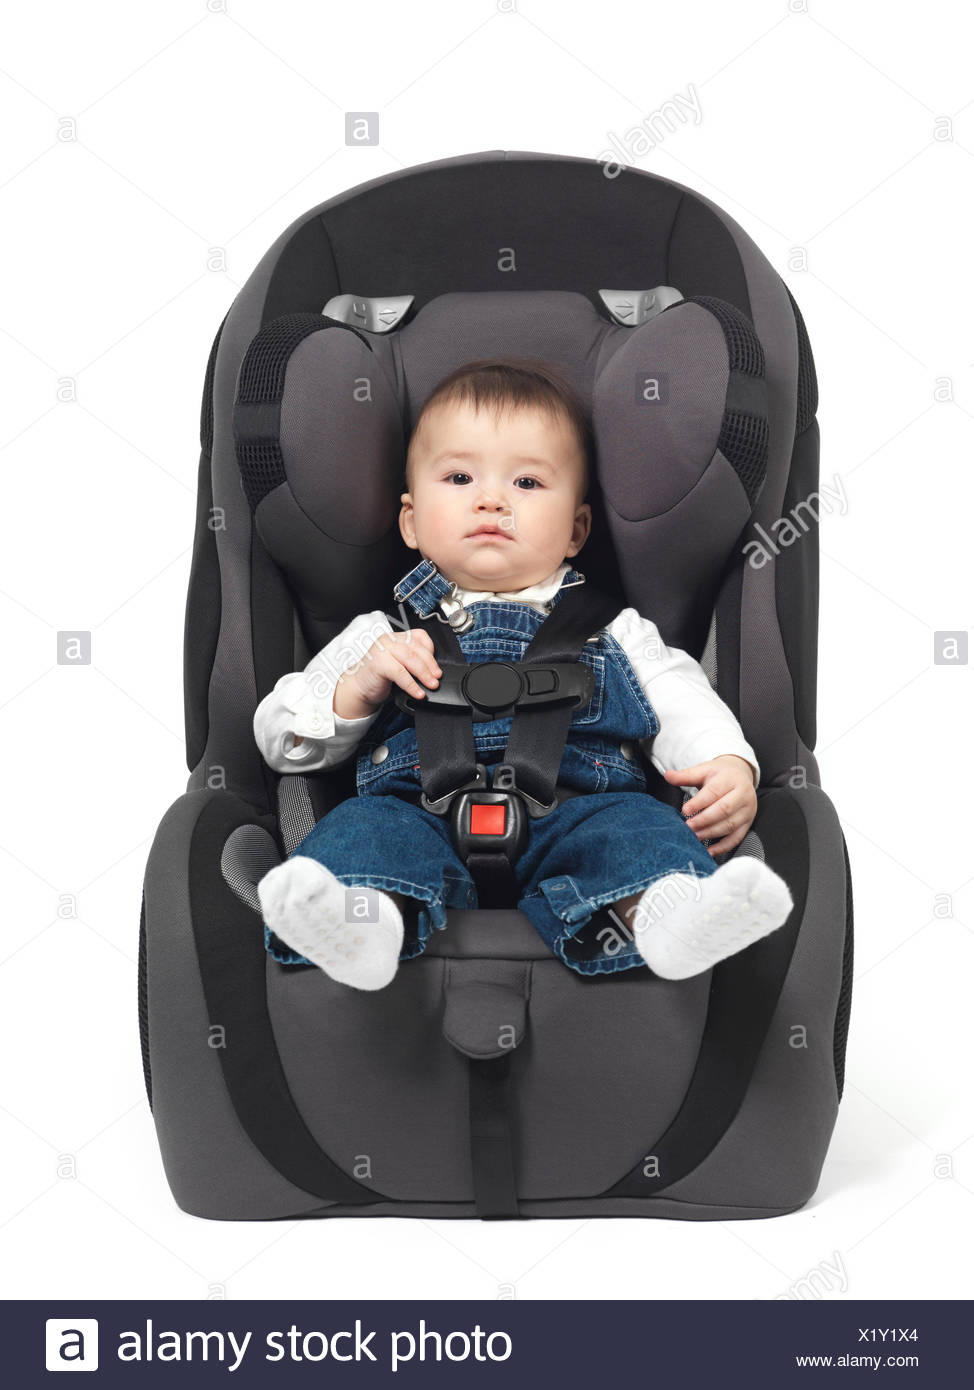 Baby sitting in a child safety seat - Stock Image